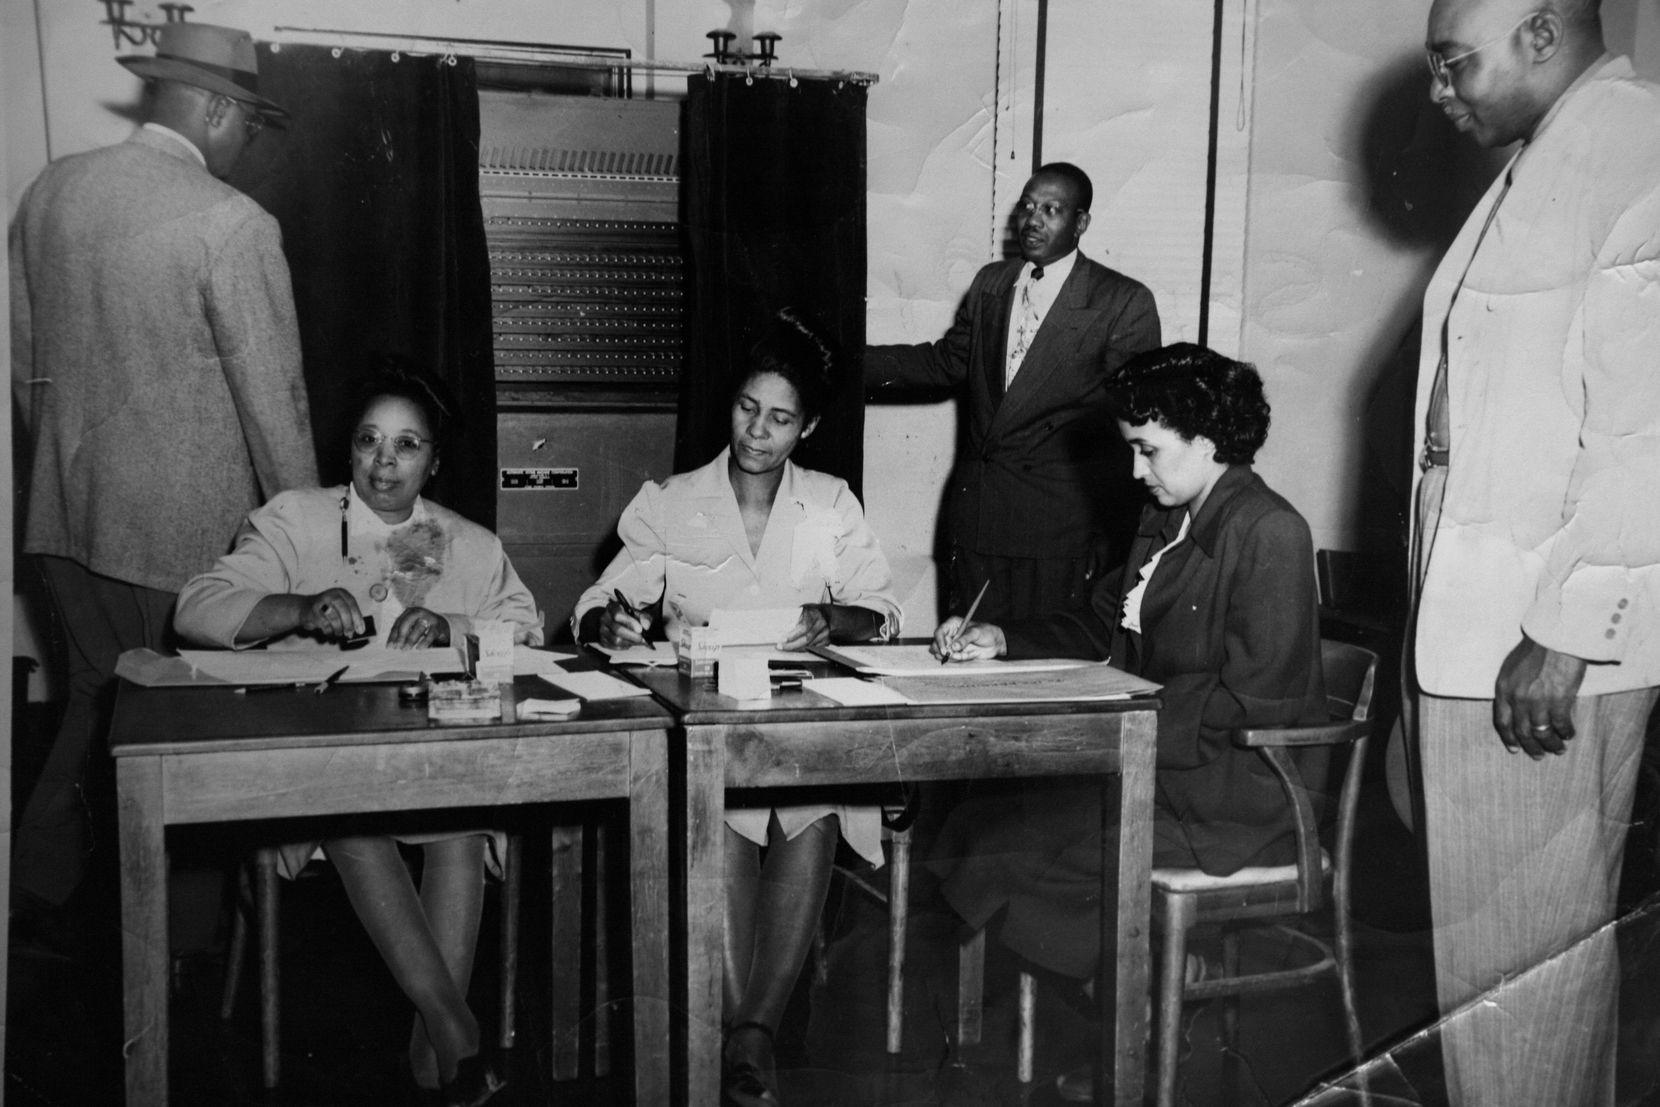 McMillan (second from right) is pictured as a 28-year-old election clerk at the Moreland Branch YMCA in 1949.